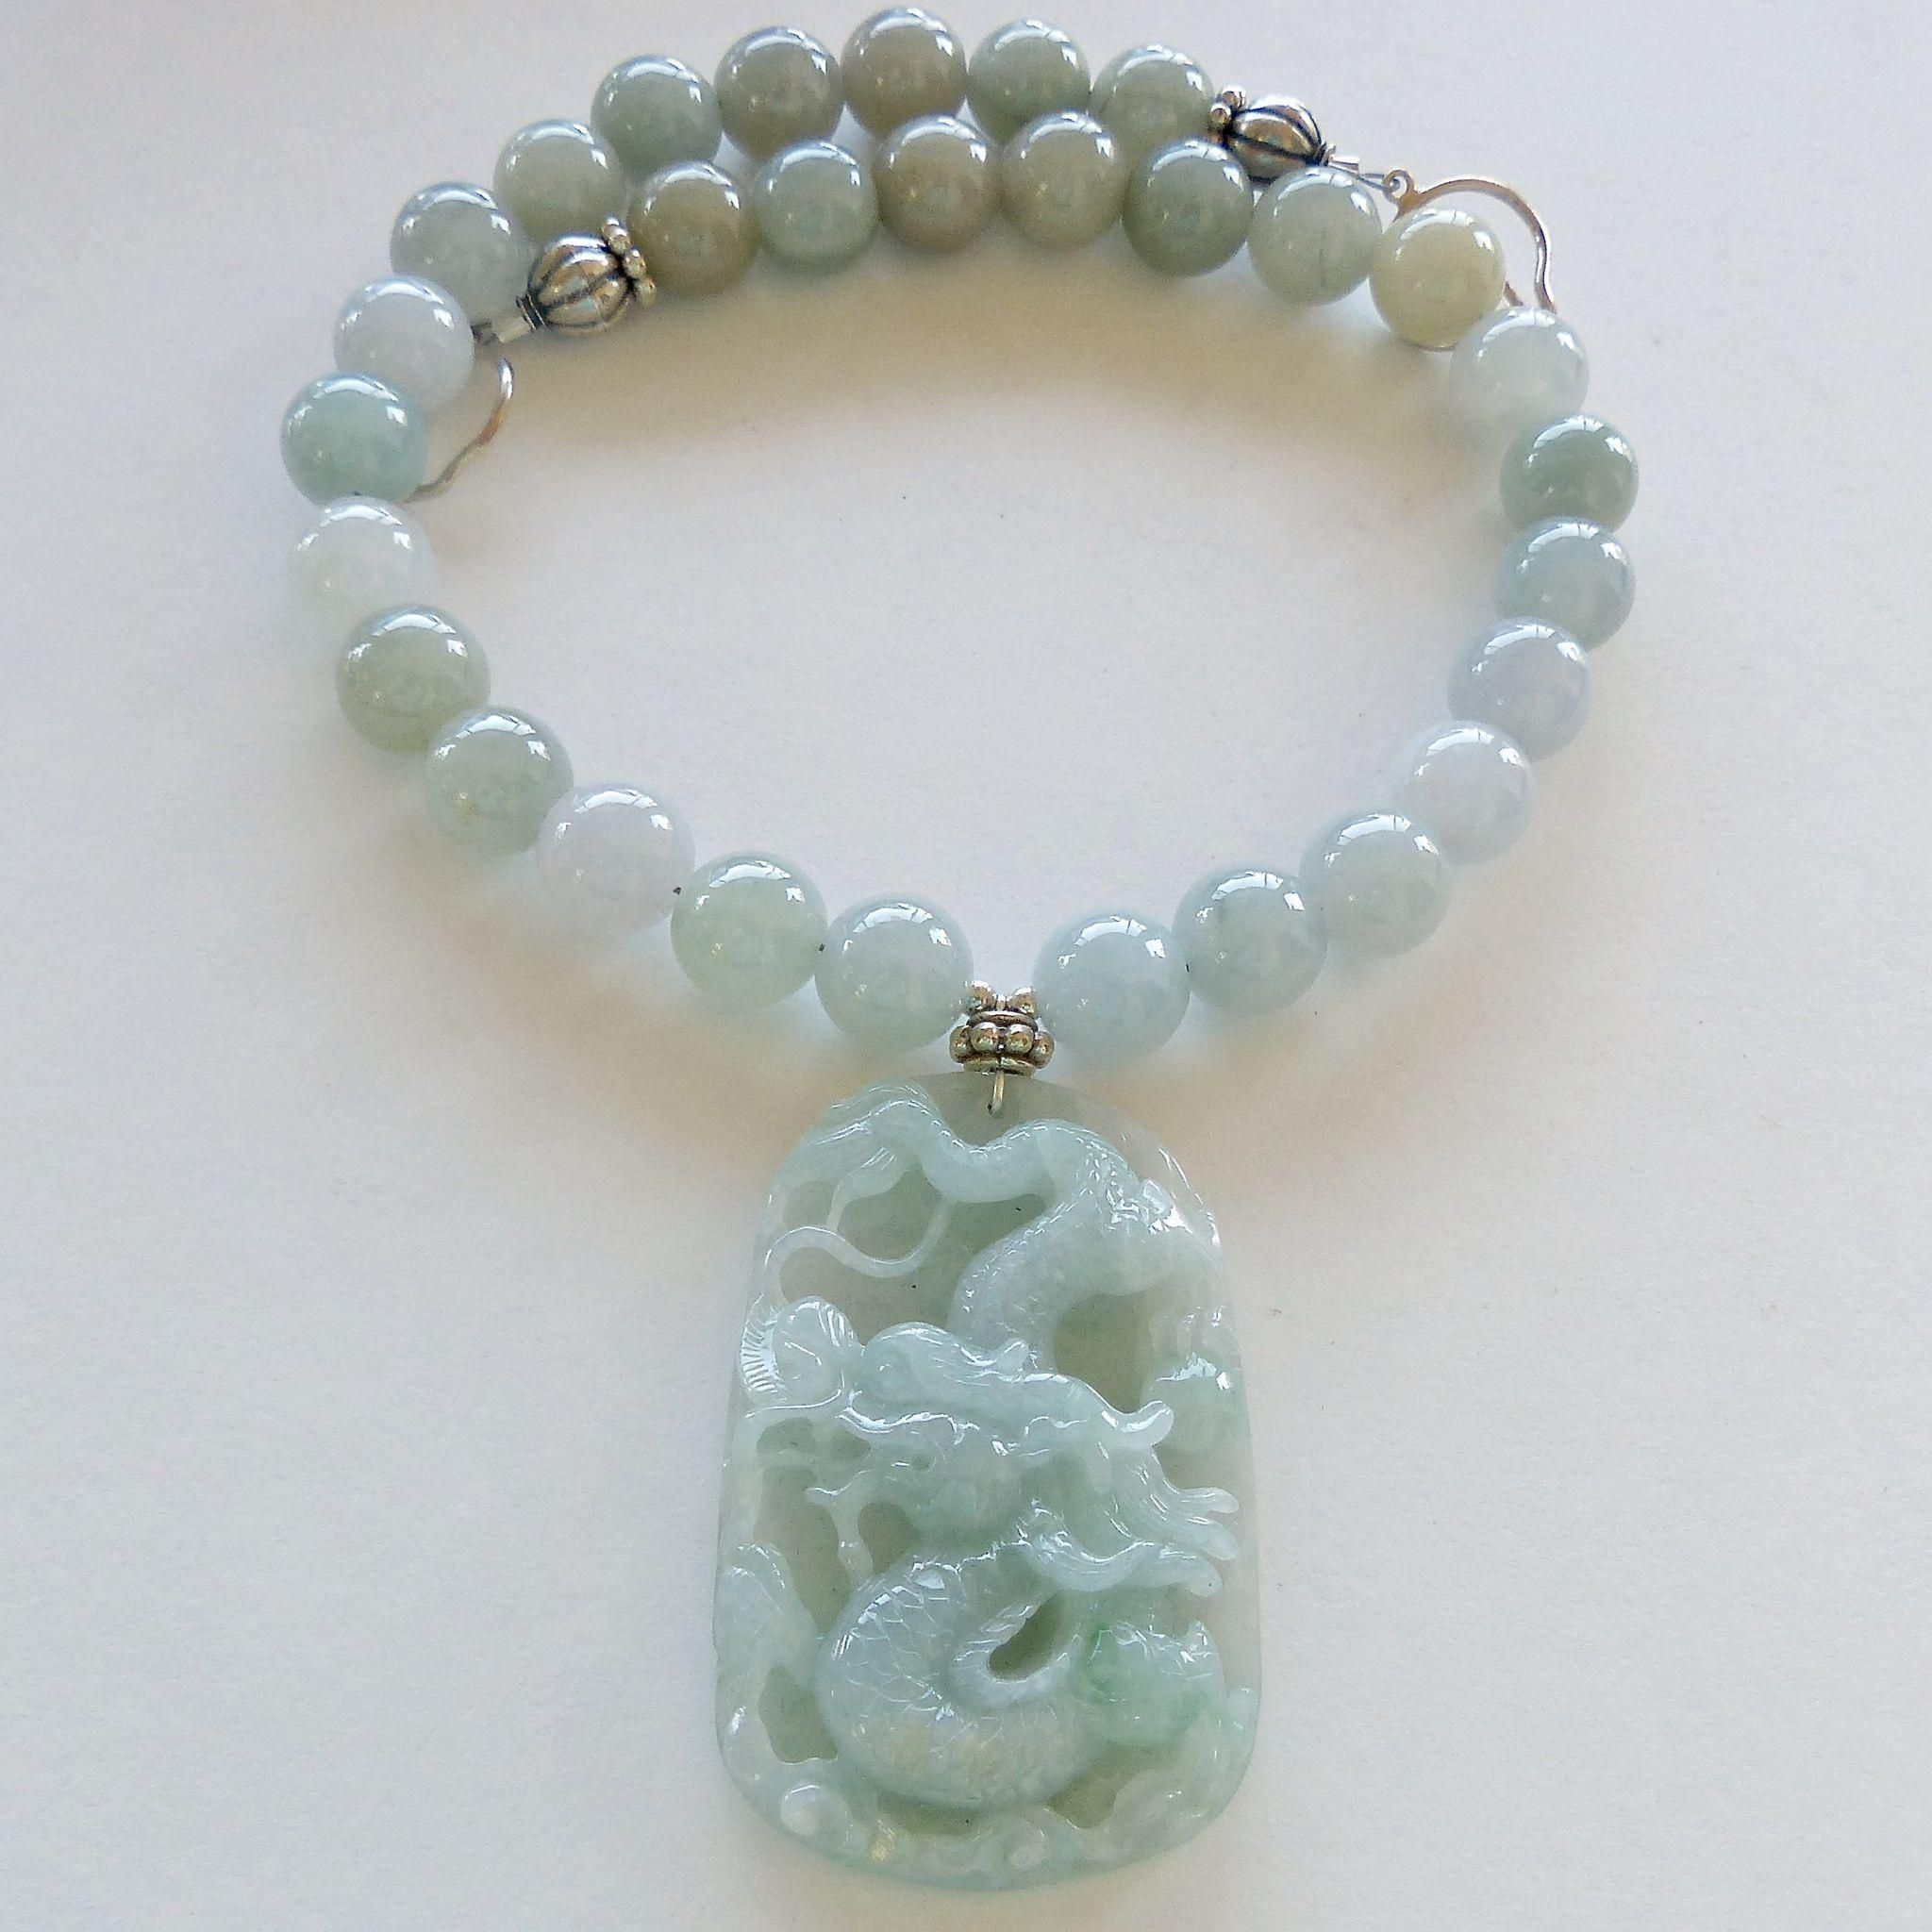 dalmatian buri carved buddha pendant fullxfull turquoise guanyin mala p dark il brown jade natural necklace seeds jasper